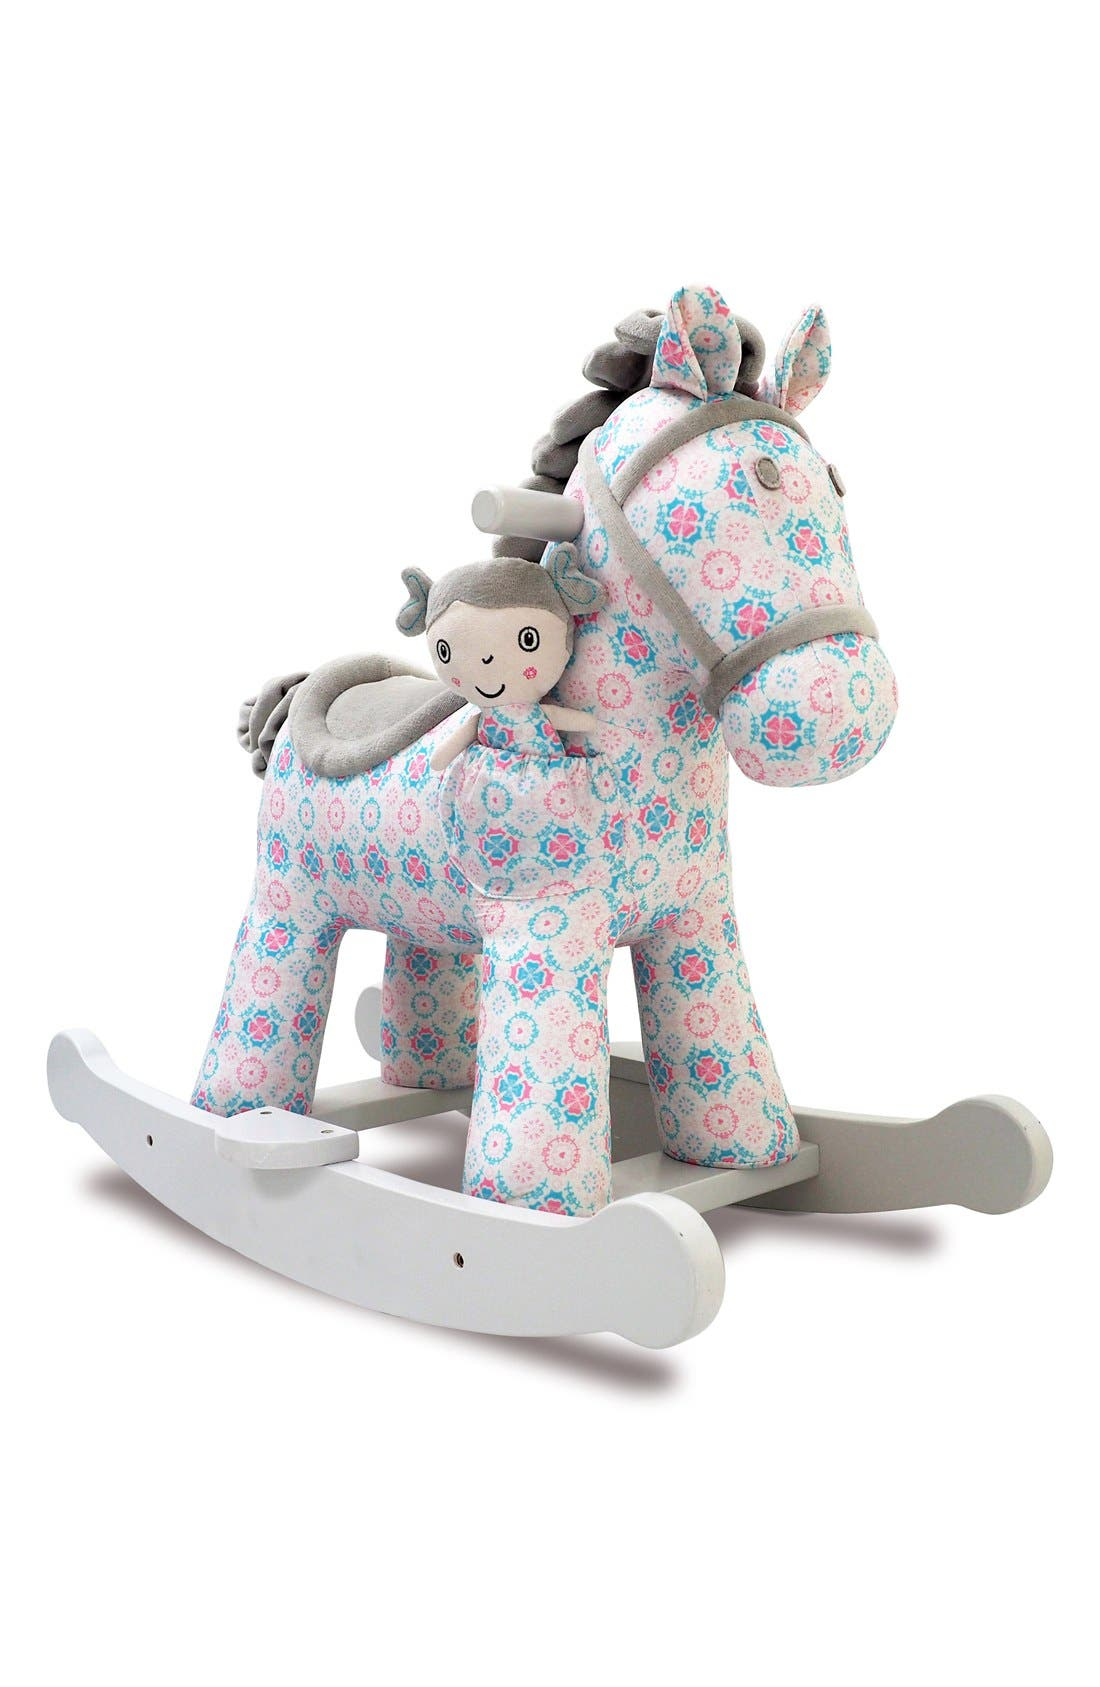 Rosie & Mae Rocking Horse & Stuffed Animal,                             Main thumbnail 1, color,